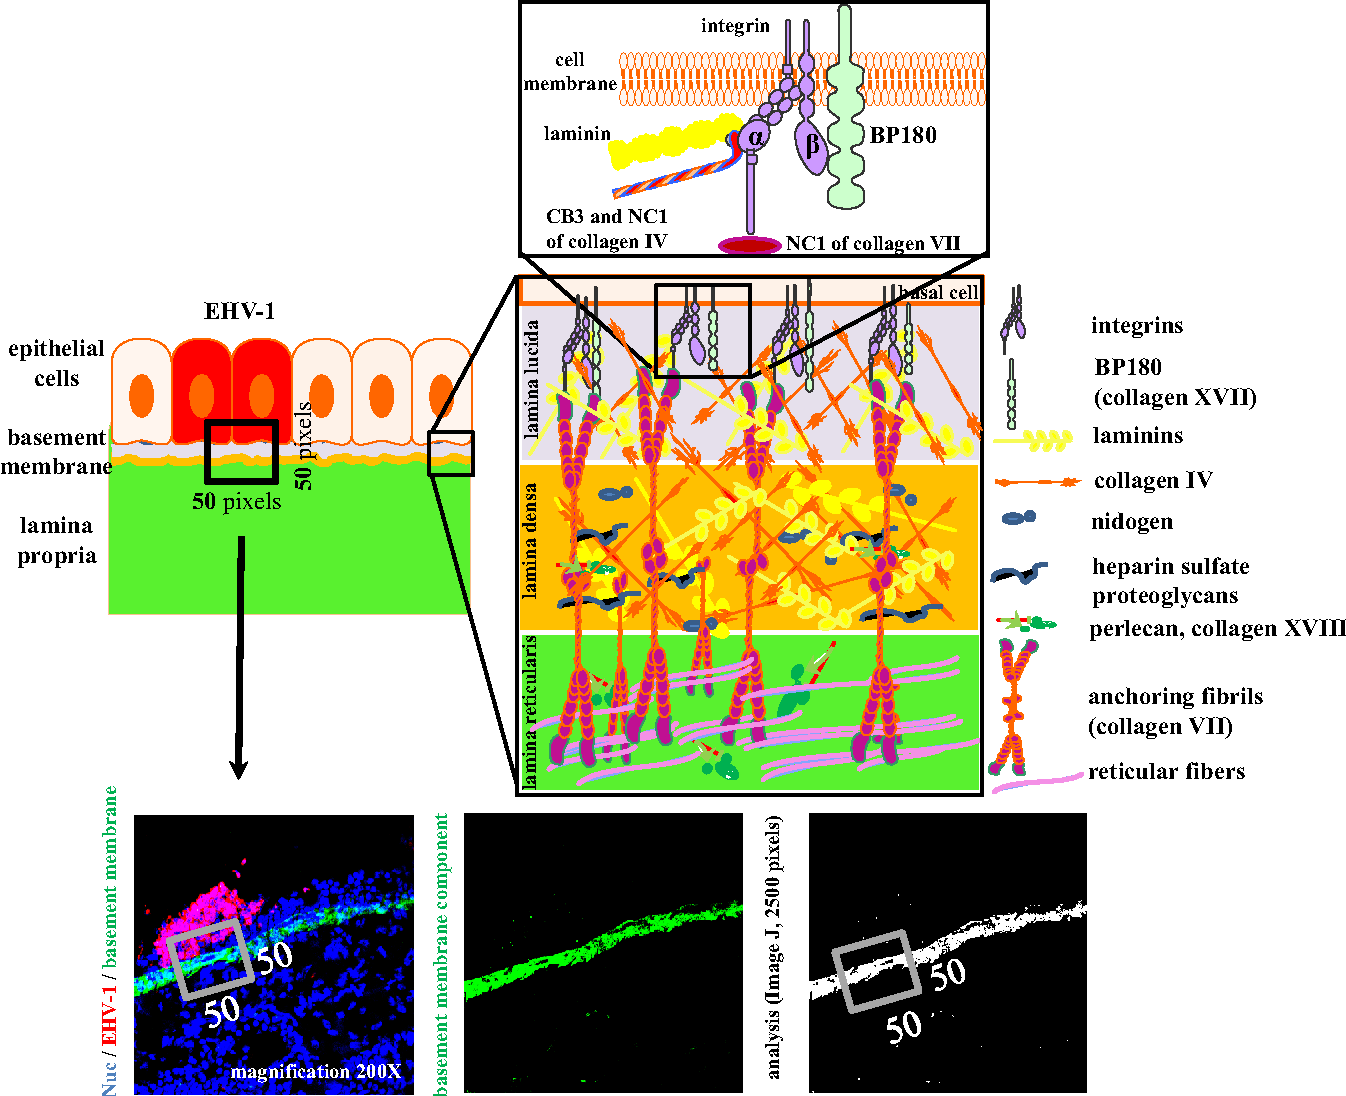 hight resolution of 1 schematic overview of the nasal mucosal basement membrane with its main components